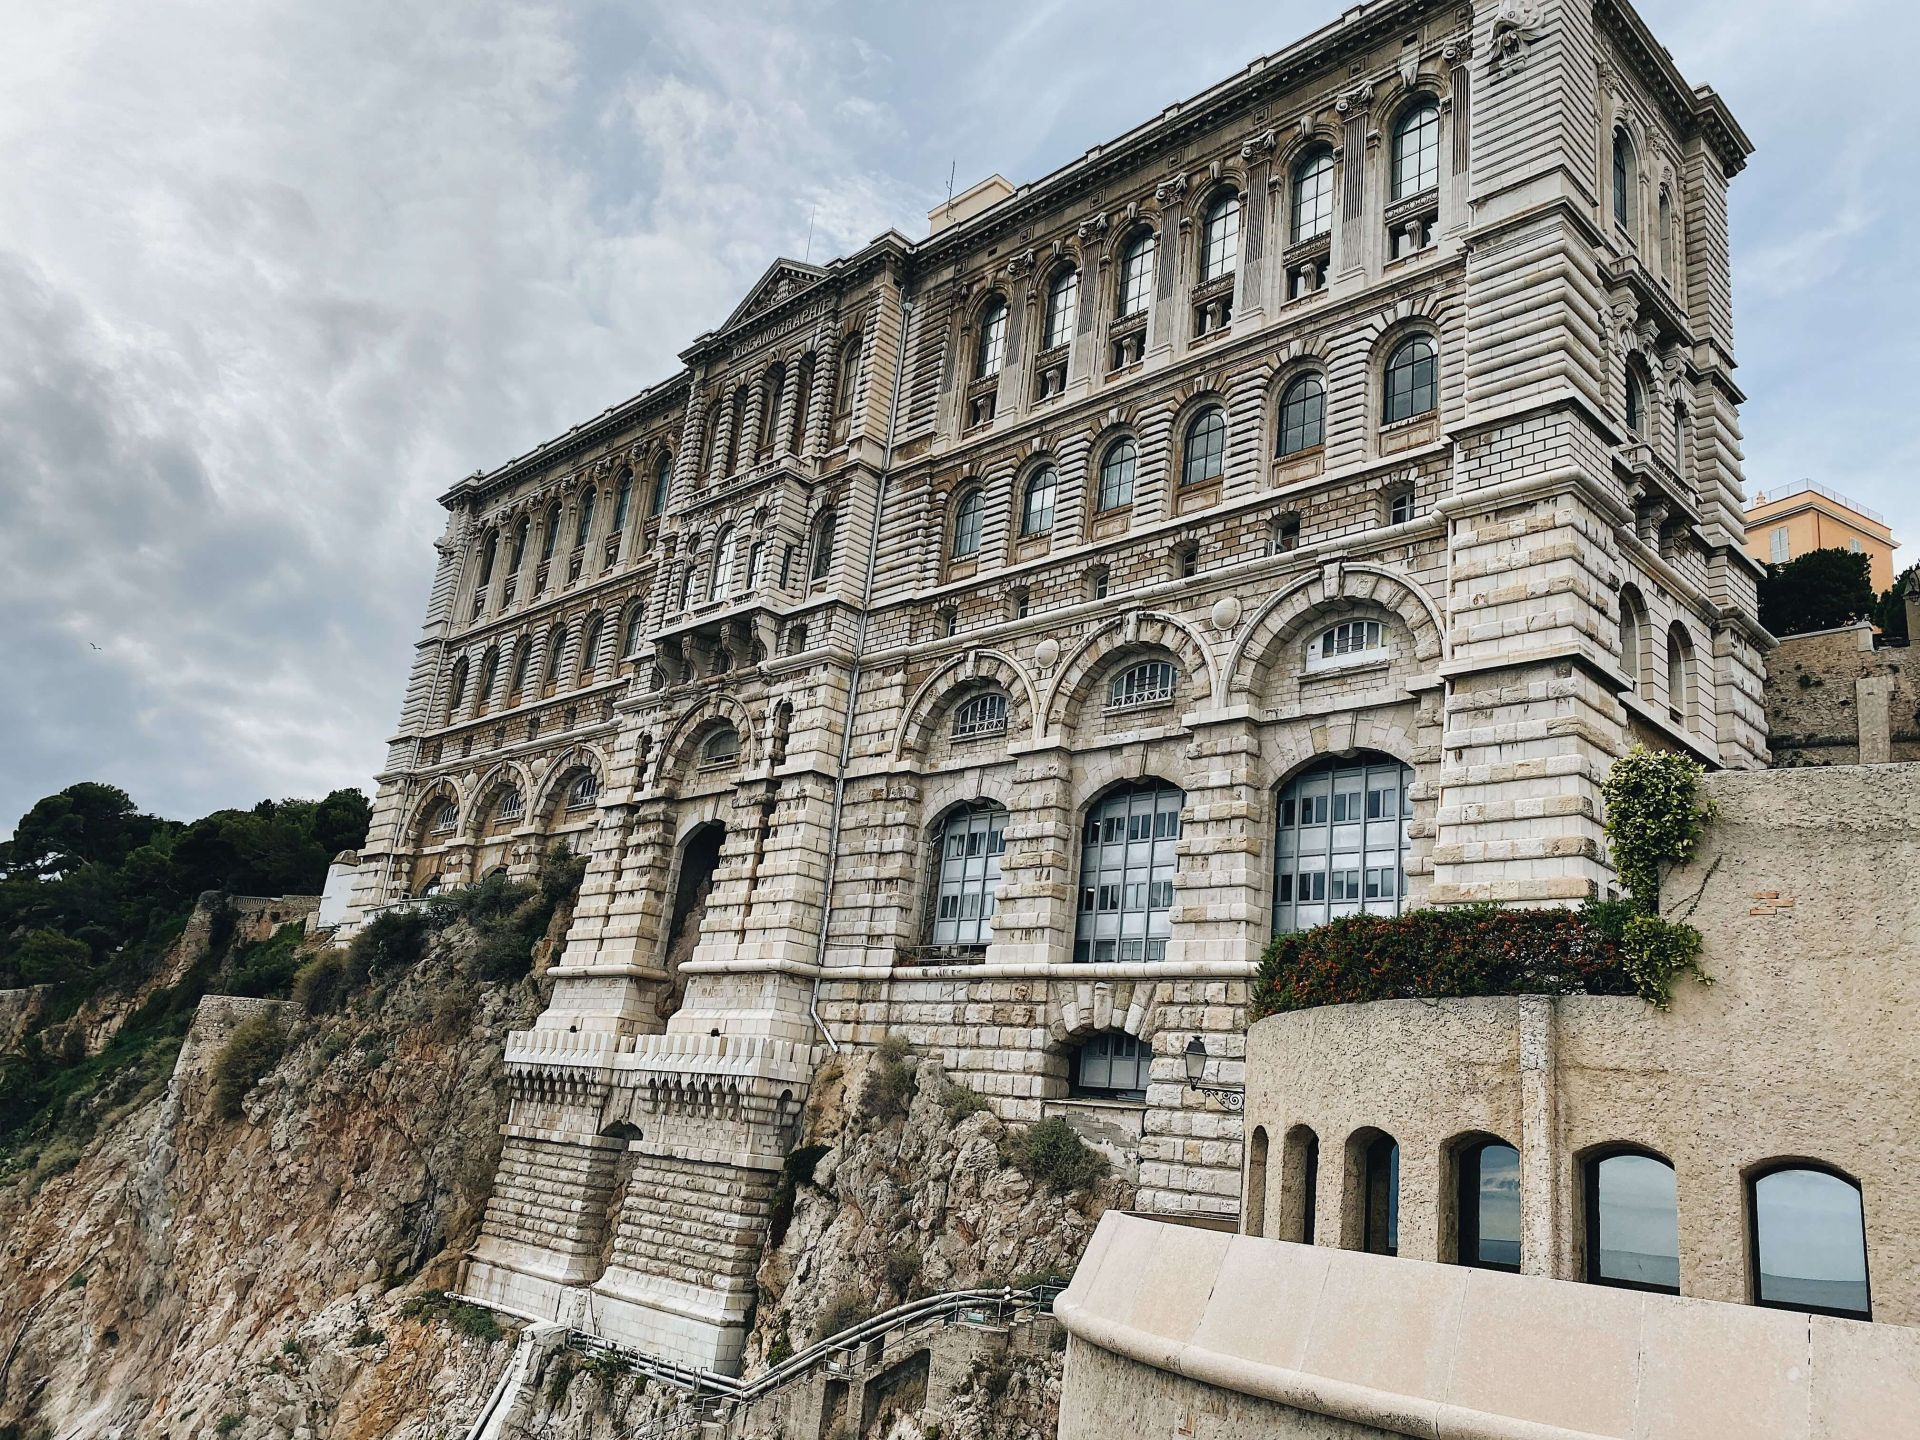 What to see in Monaco in one day